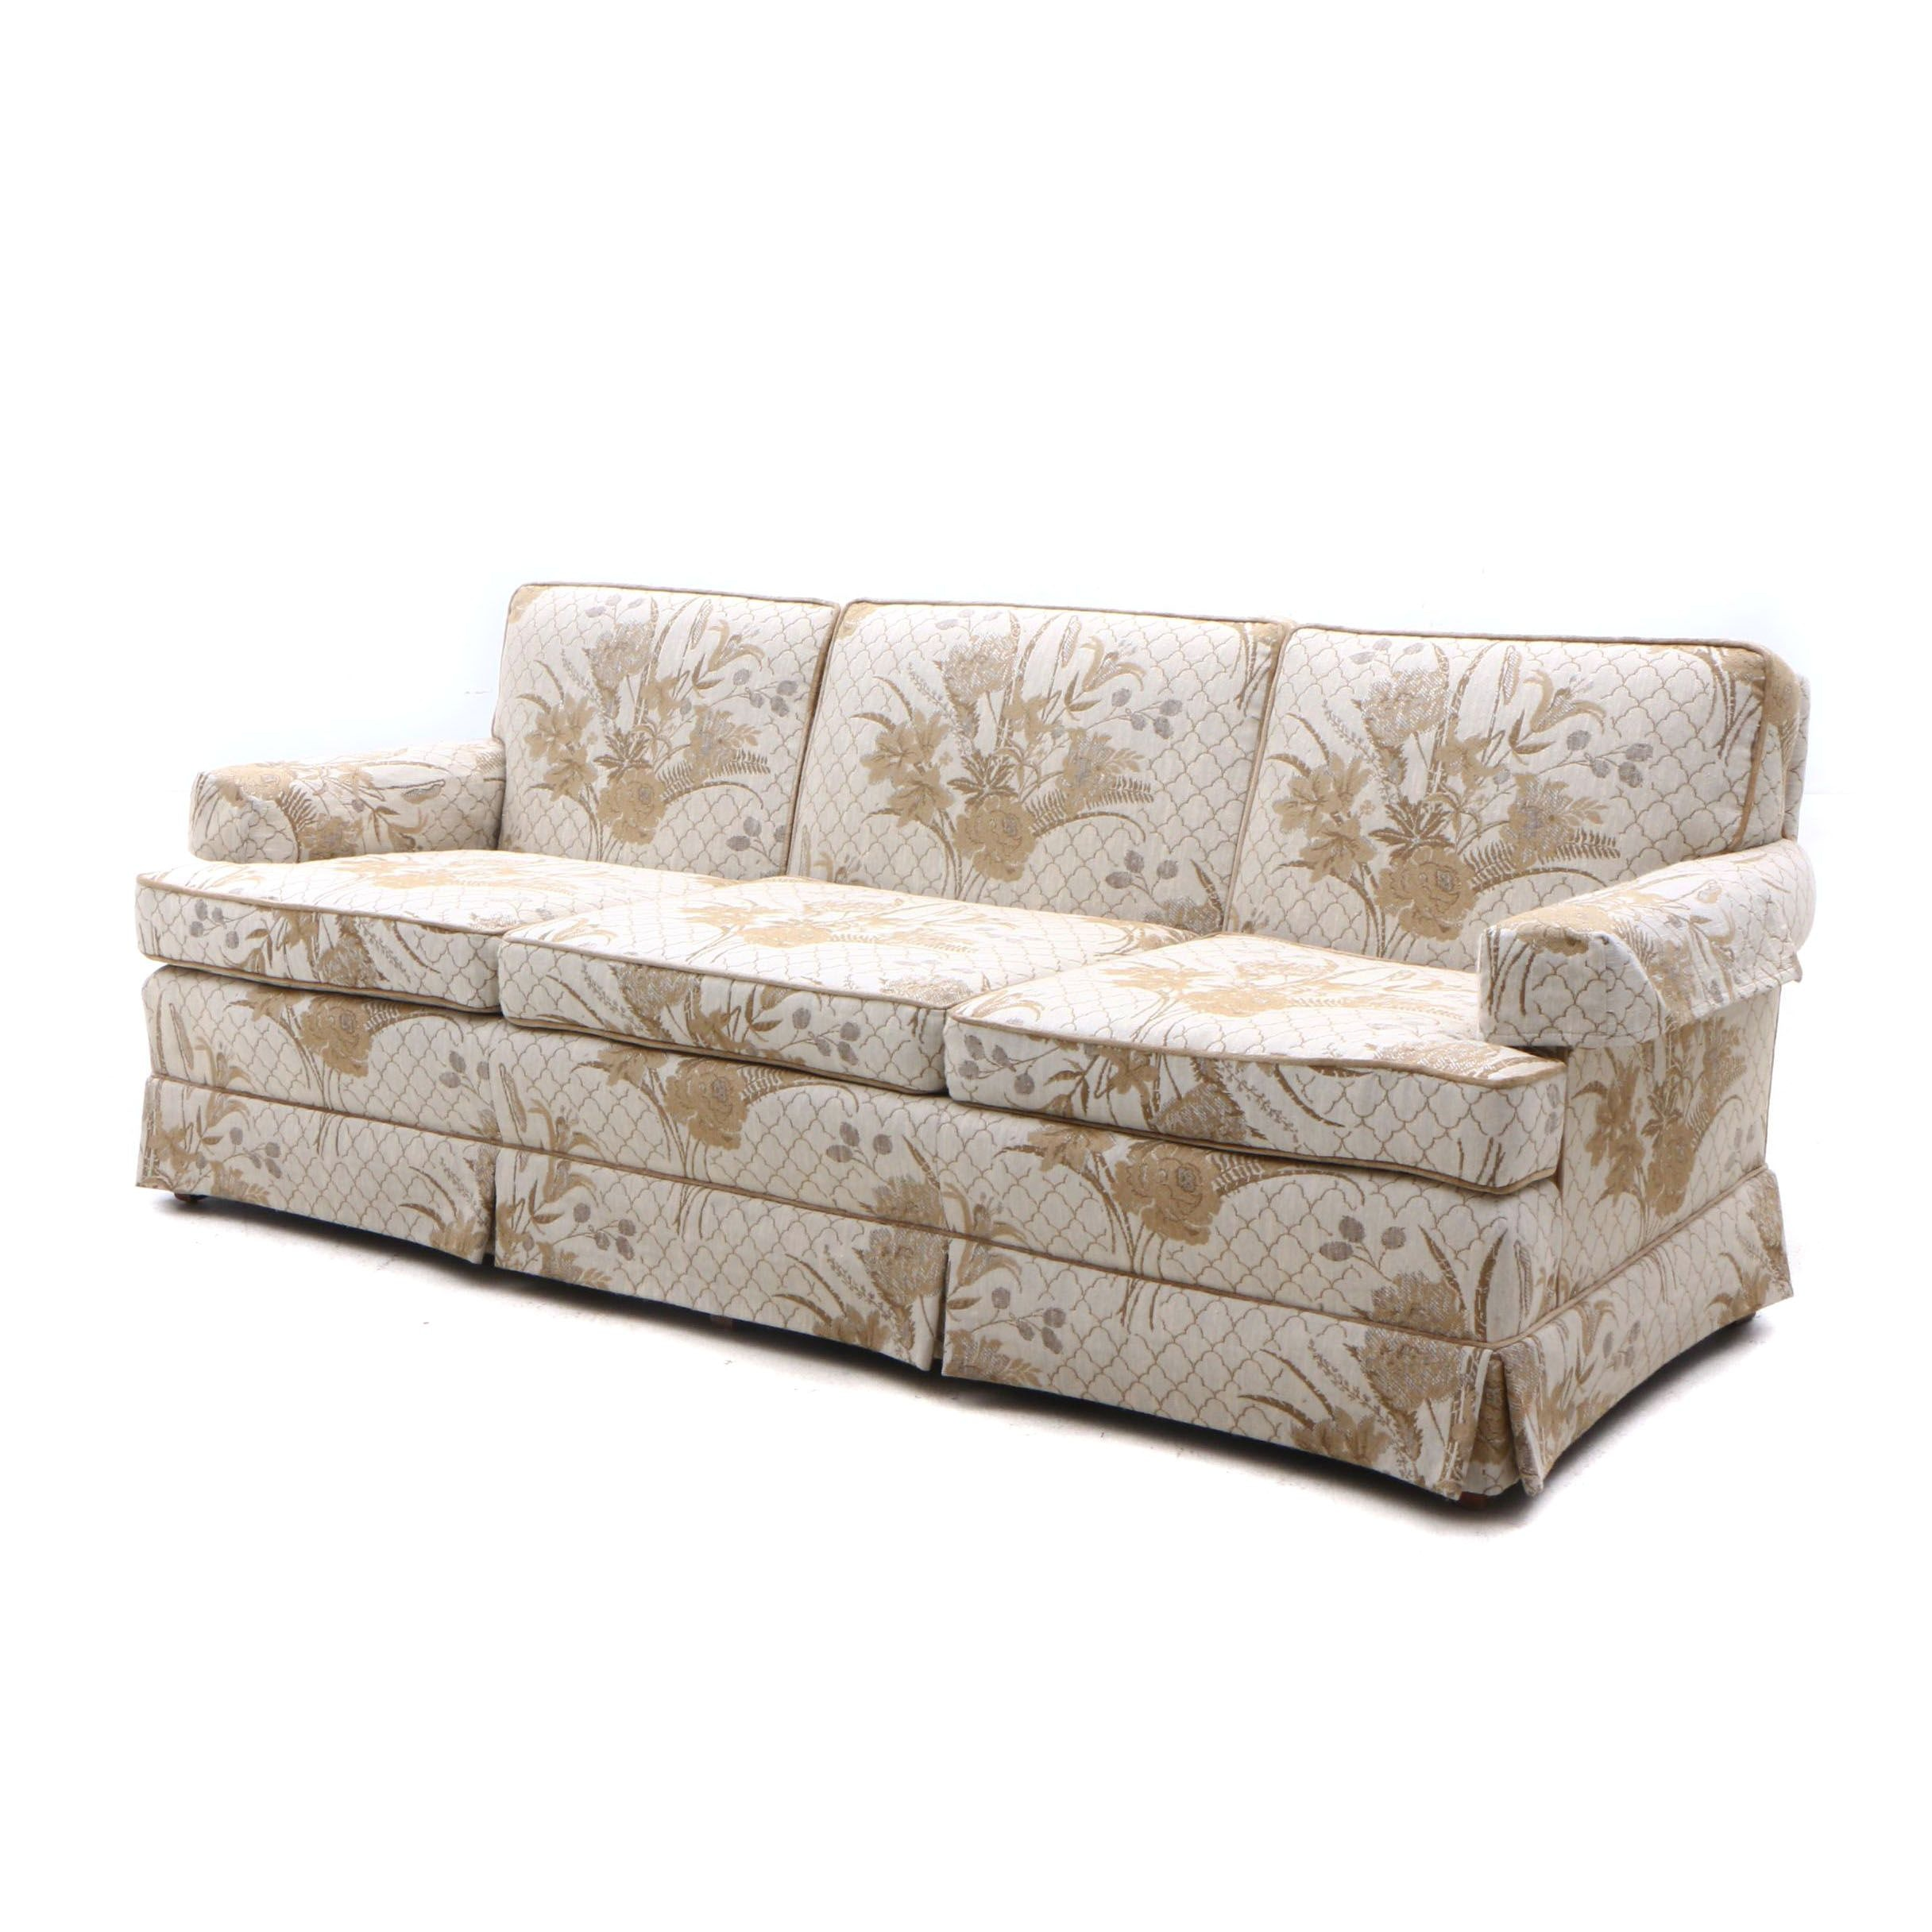 Upholstered Sofa by Highland House of Hickory, Mid 20th Century